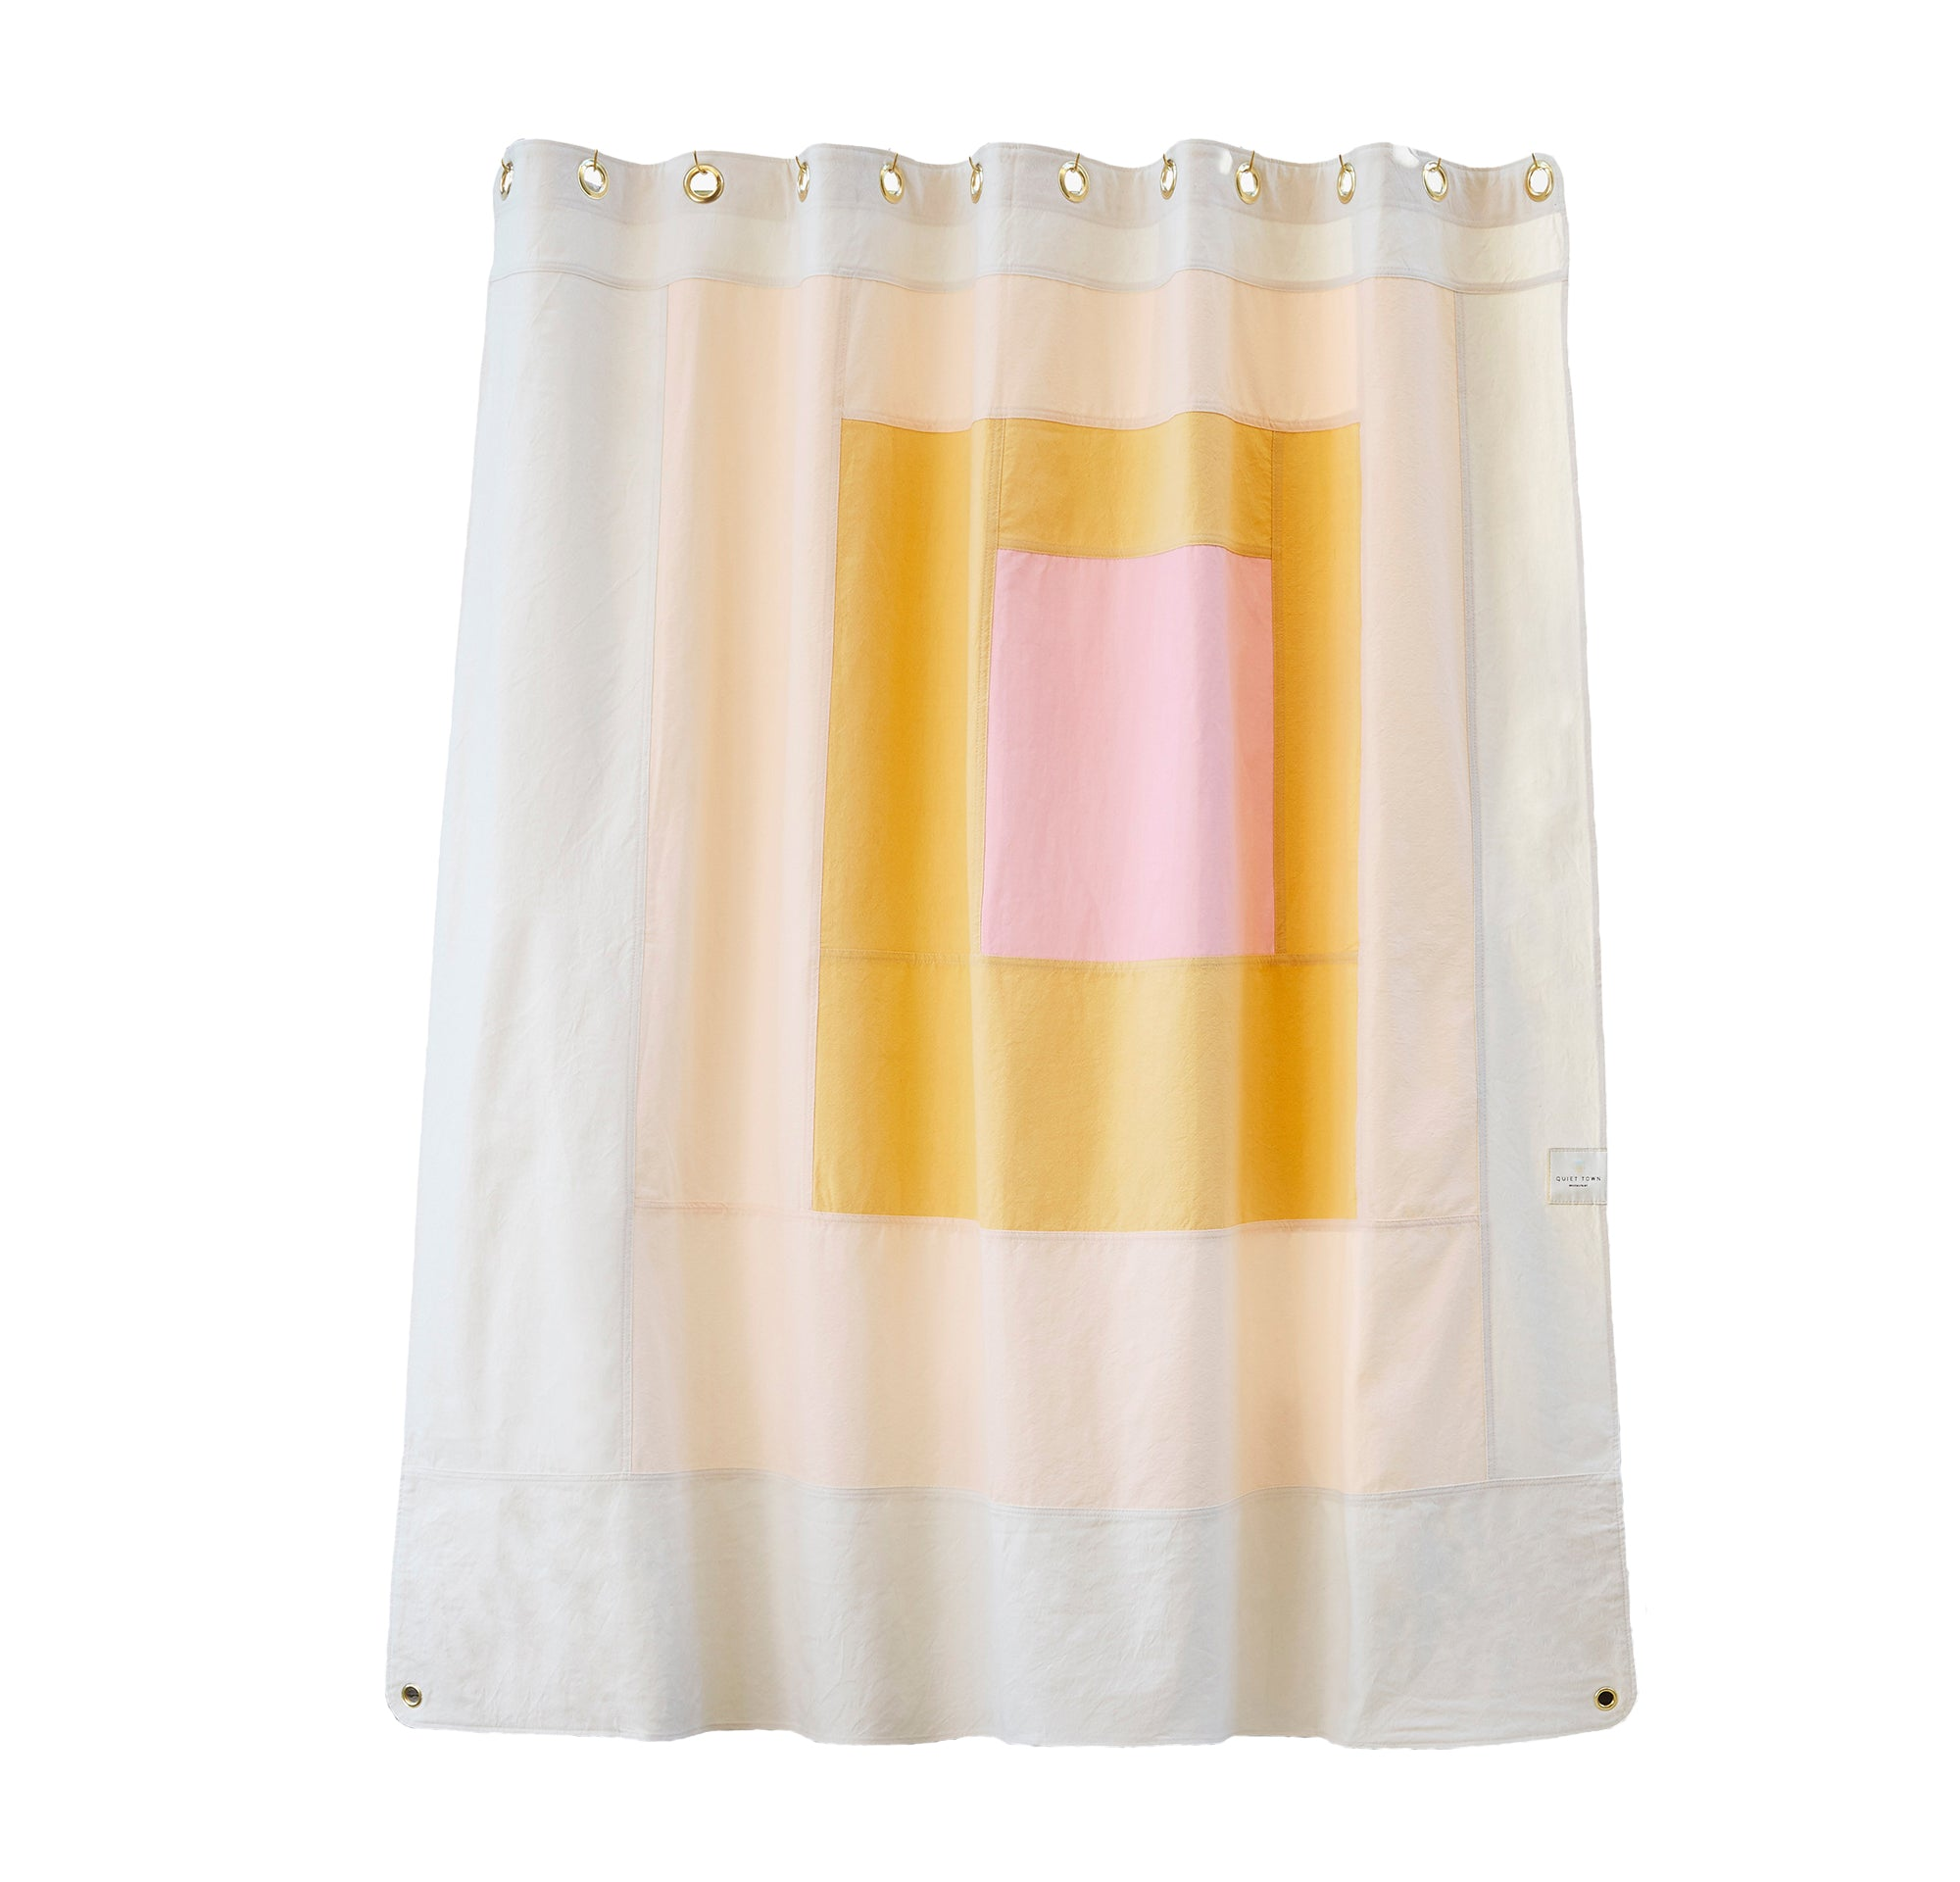 CANVAS SHOWER CURTAIN - MARFA CLOUD